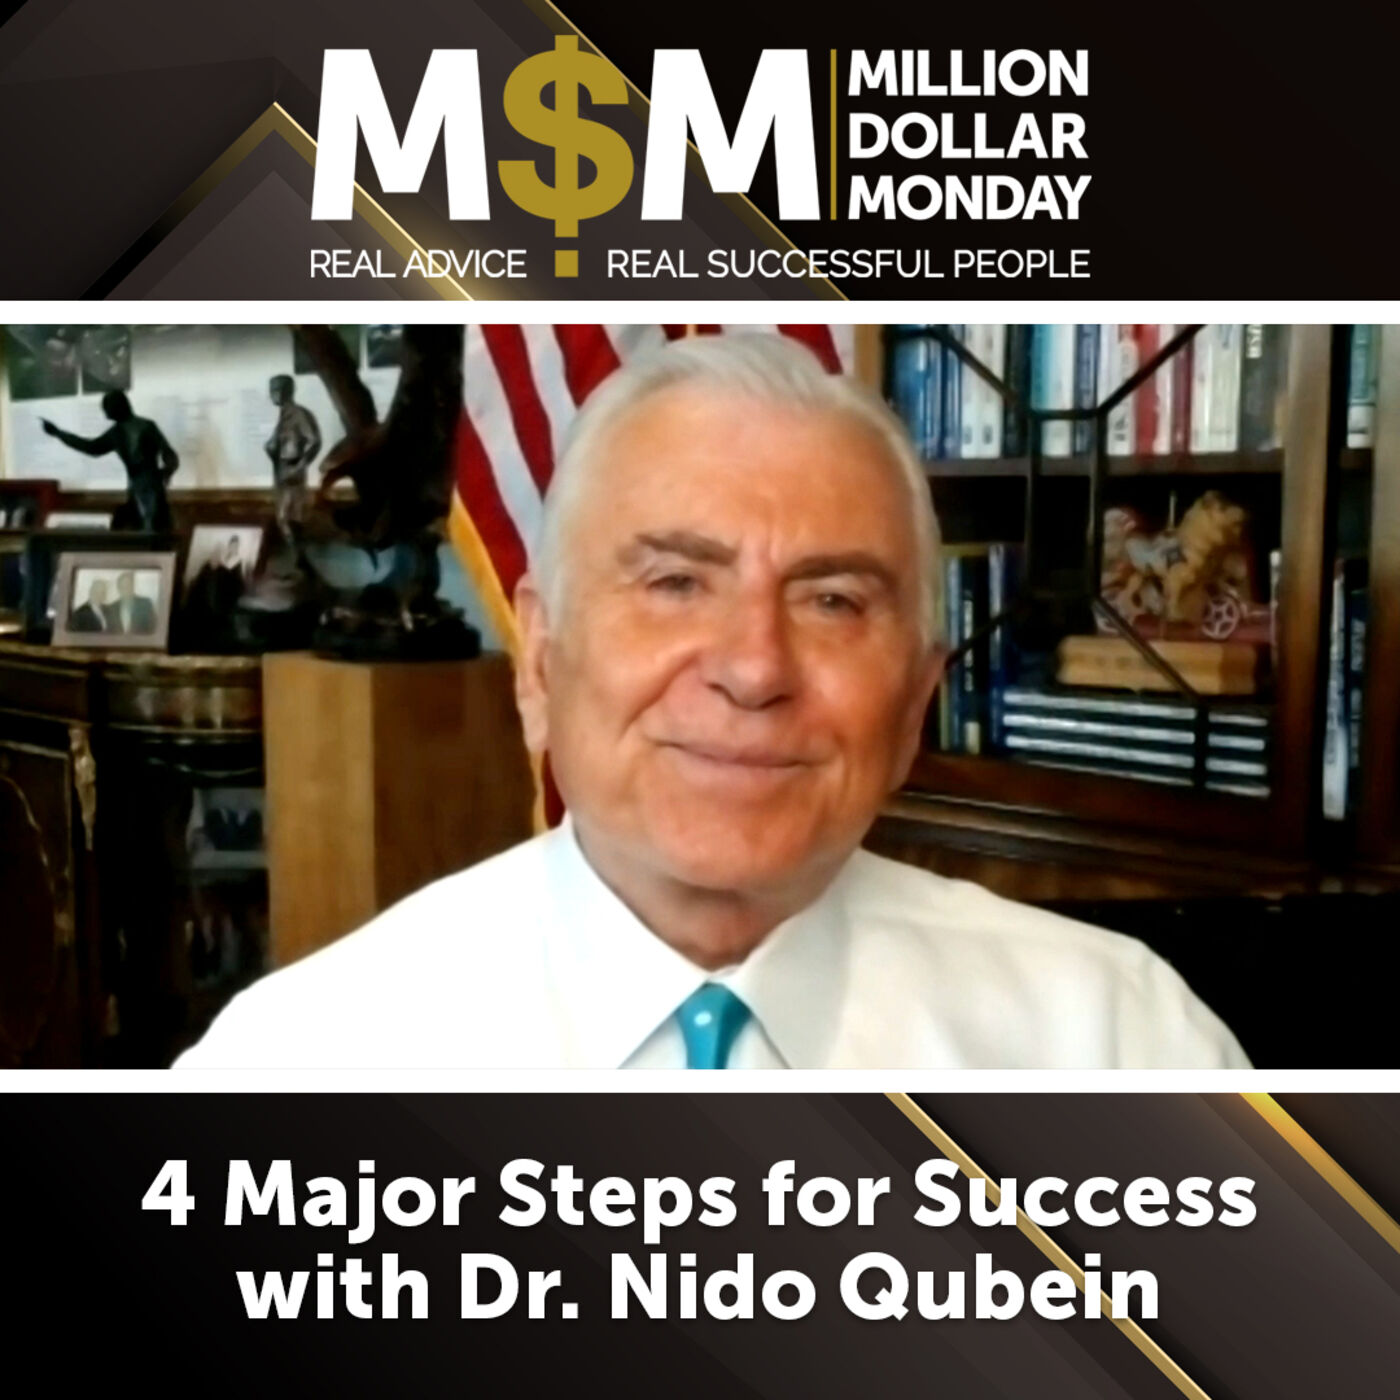 4 Major Steps for Success with Dr. Nido Qubein